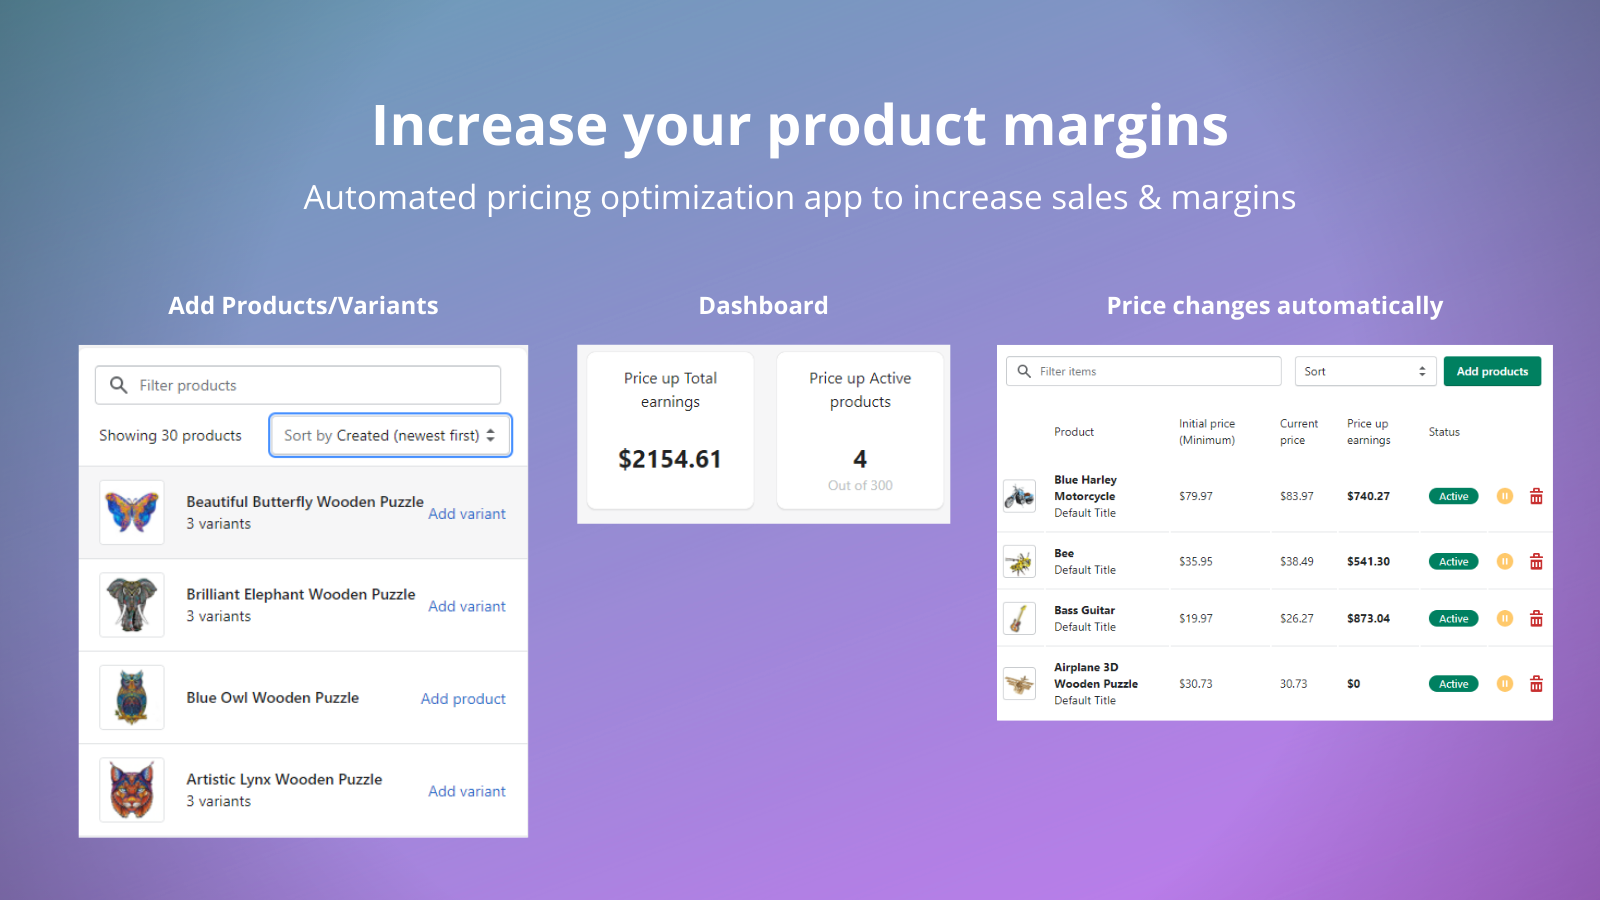 Increase your product margins